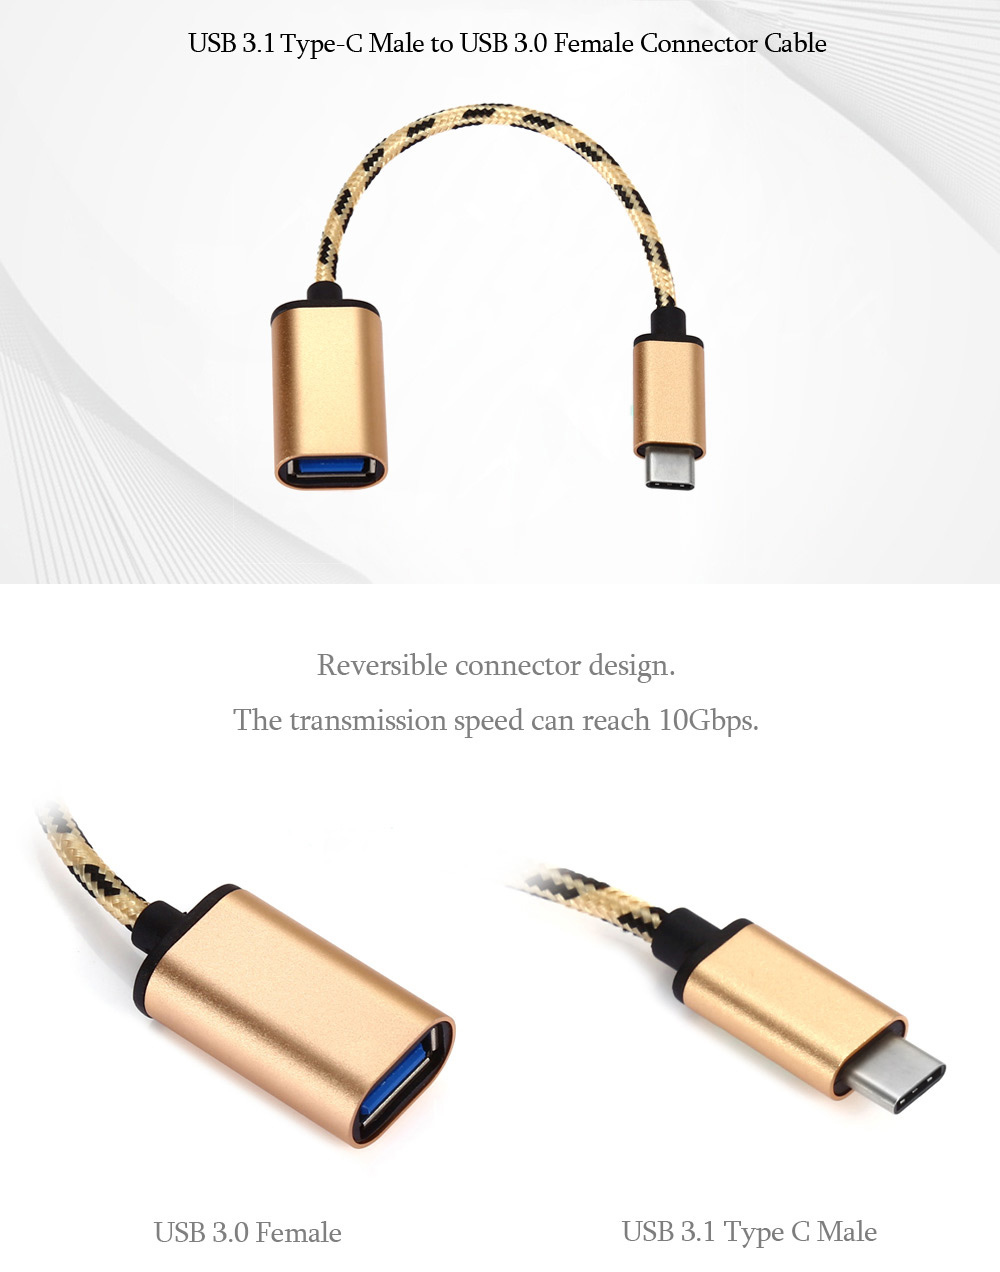 USB 3.1 Type-C Male to USB 3.0 Female Data Cable